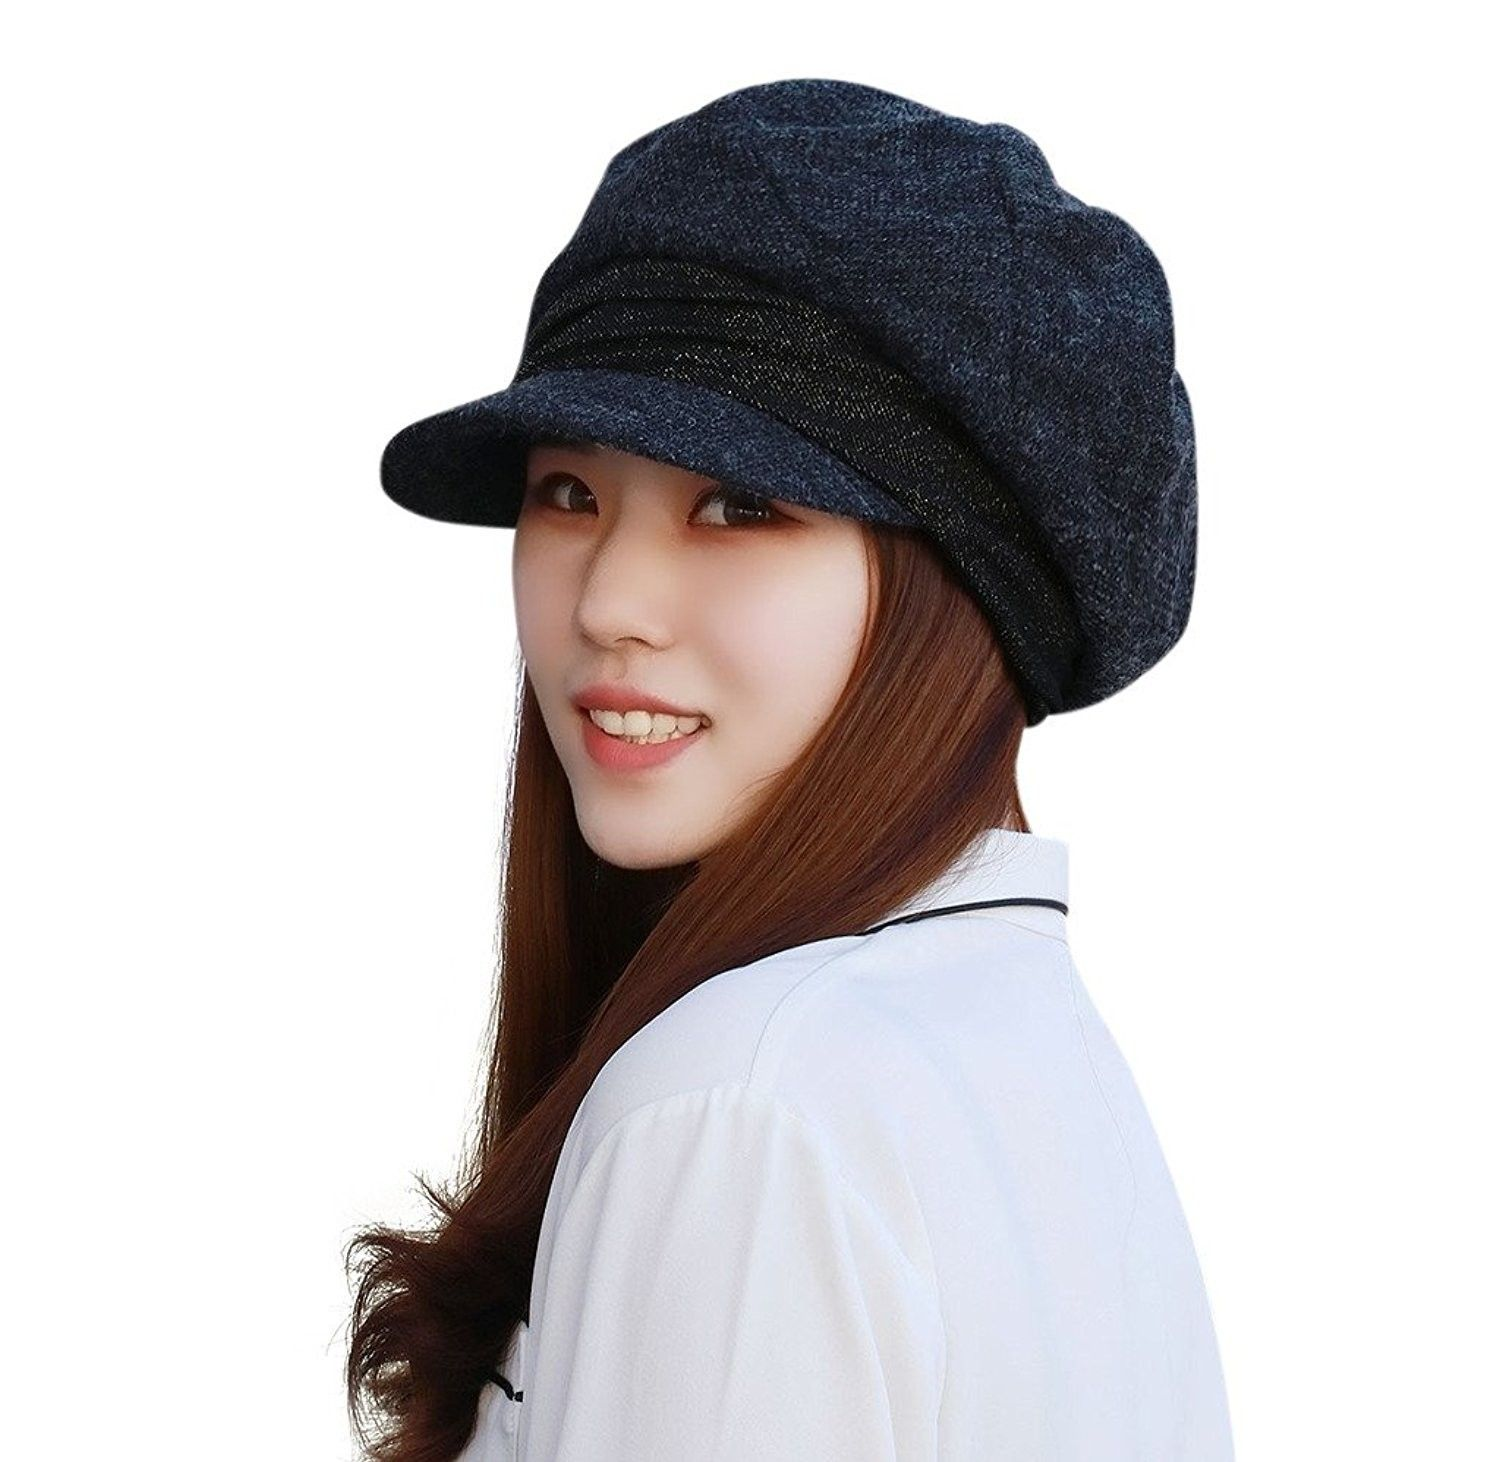 4edf8d2be Womens Hat with Visor Newsboy Hat Ivy Cap Banded Beret - Gray ...